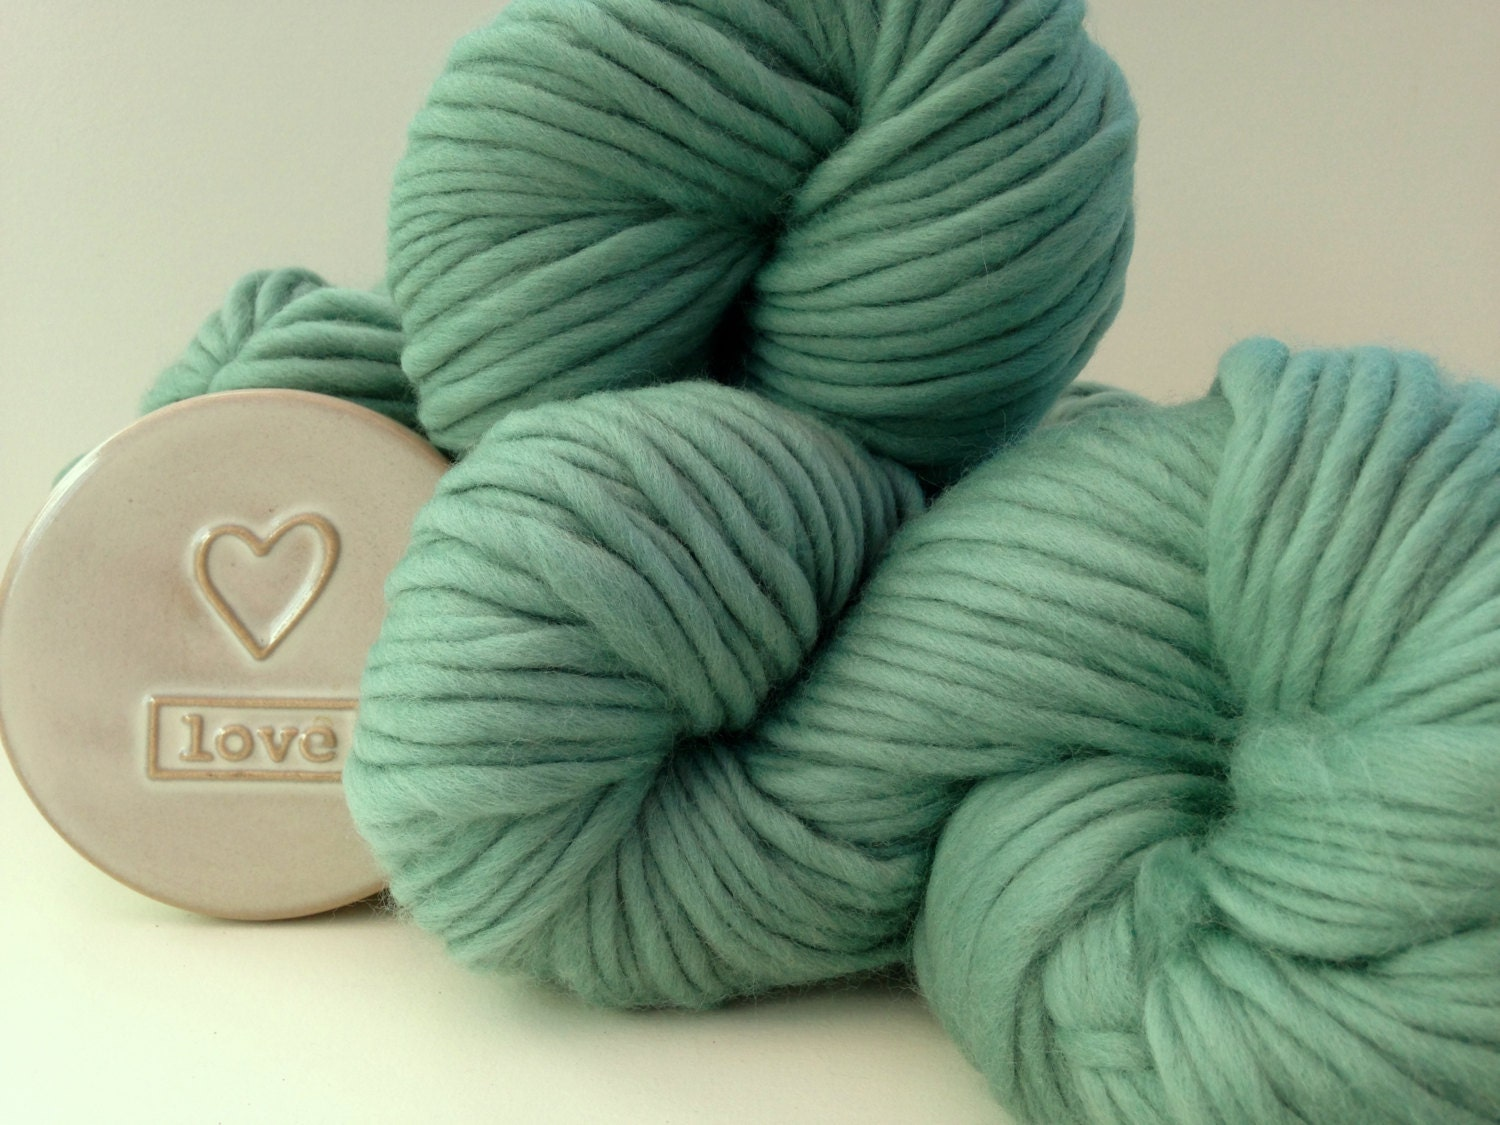 Super Bulky Yarn : Chunky wool yarn. Teal Green Super bulky by WoolCoutureCompany